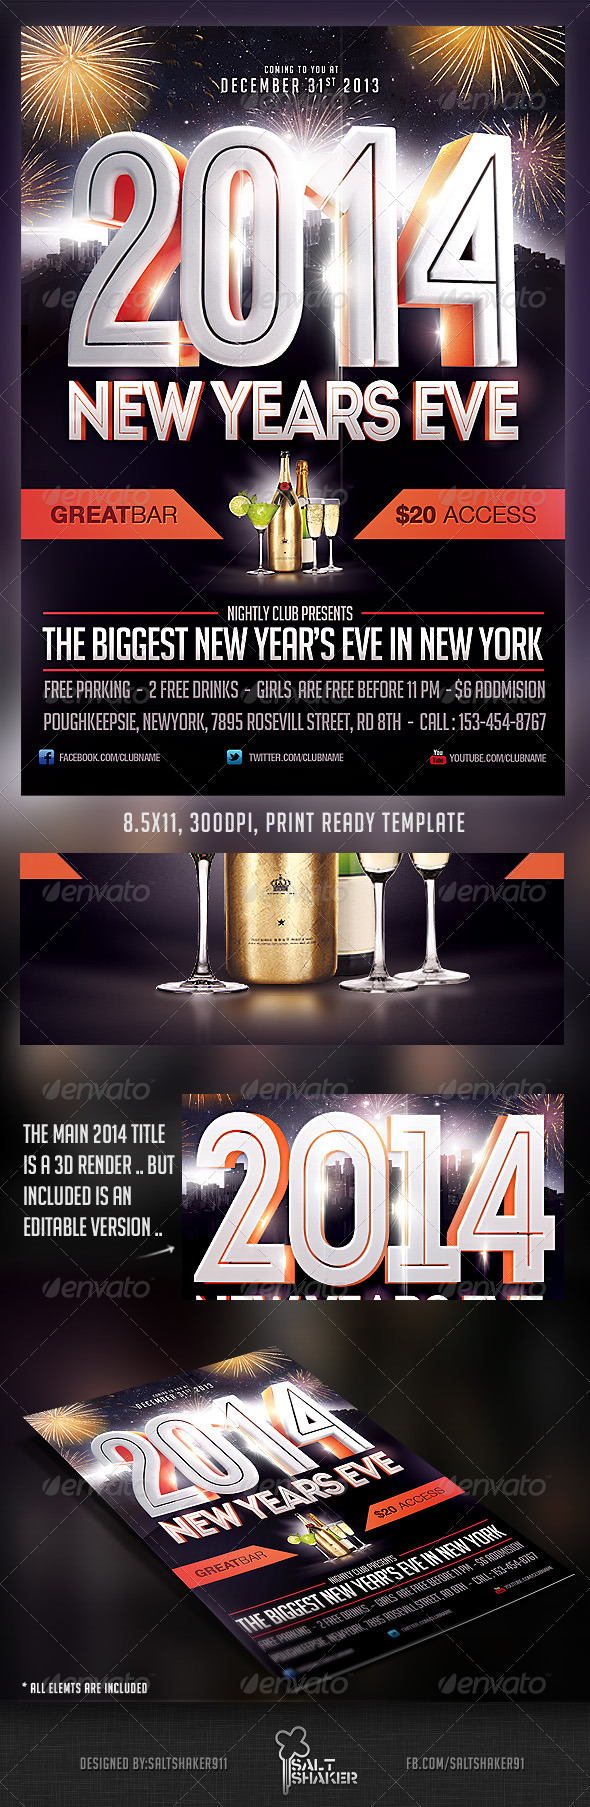 2014 New Years Eve Flyer Template - Clubs & Parties Events